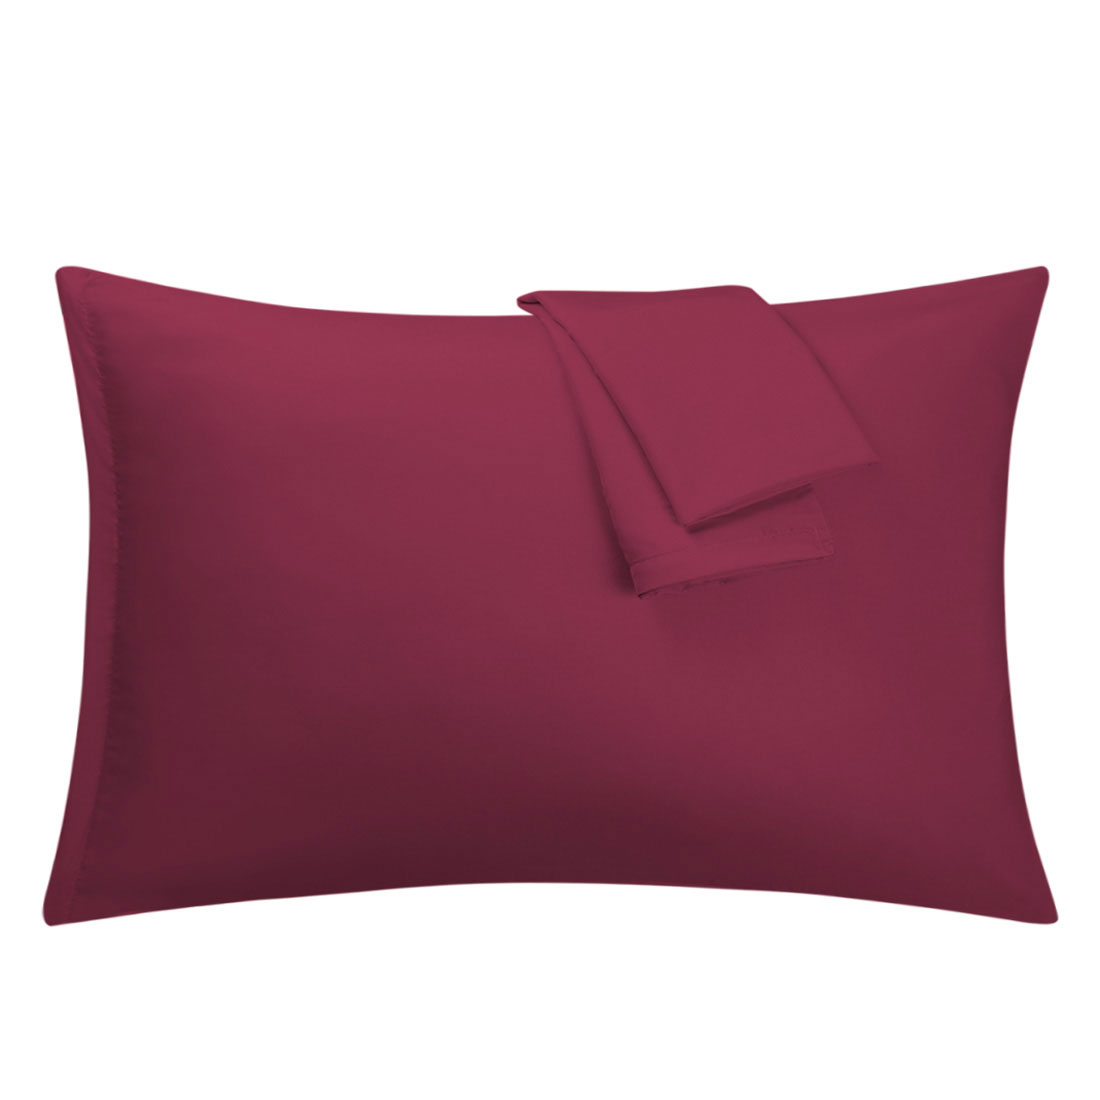 Wine Pillowcases Soft Microfiber Pillow Case Cover with Zipper King, 2 Pack